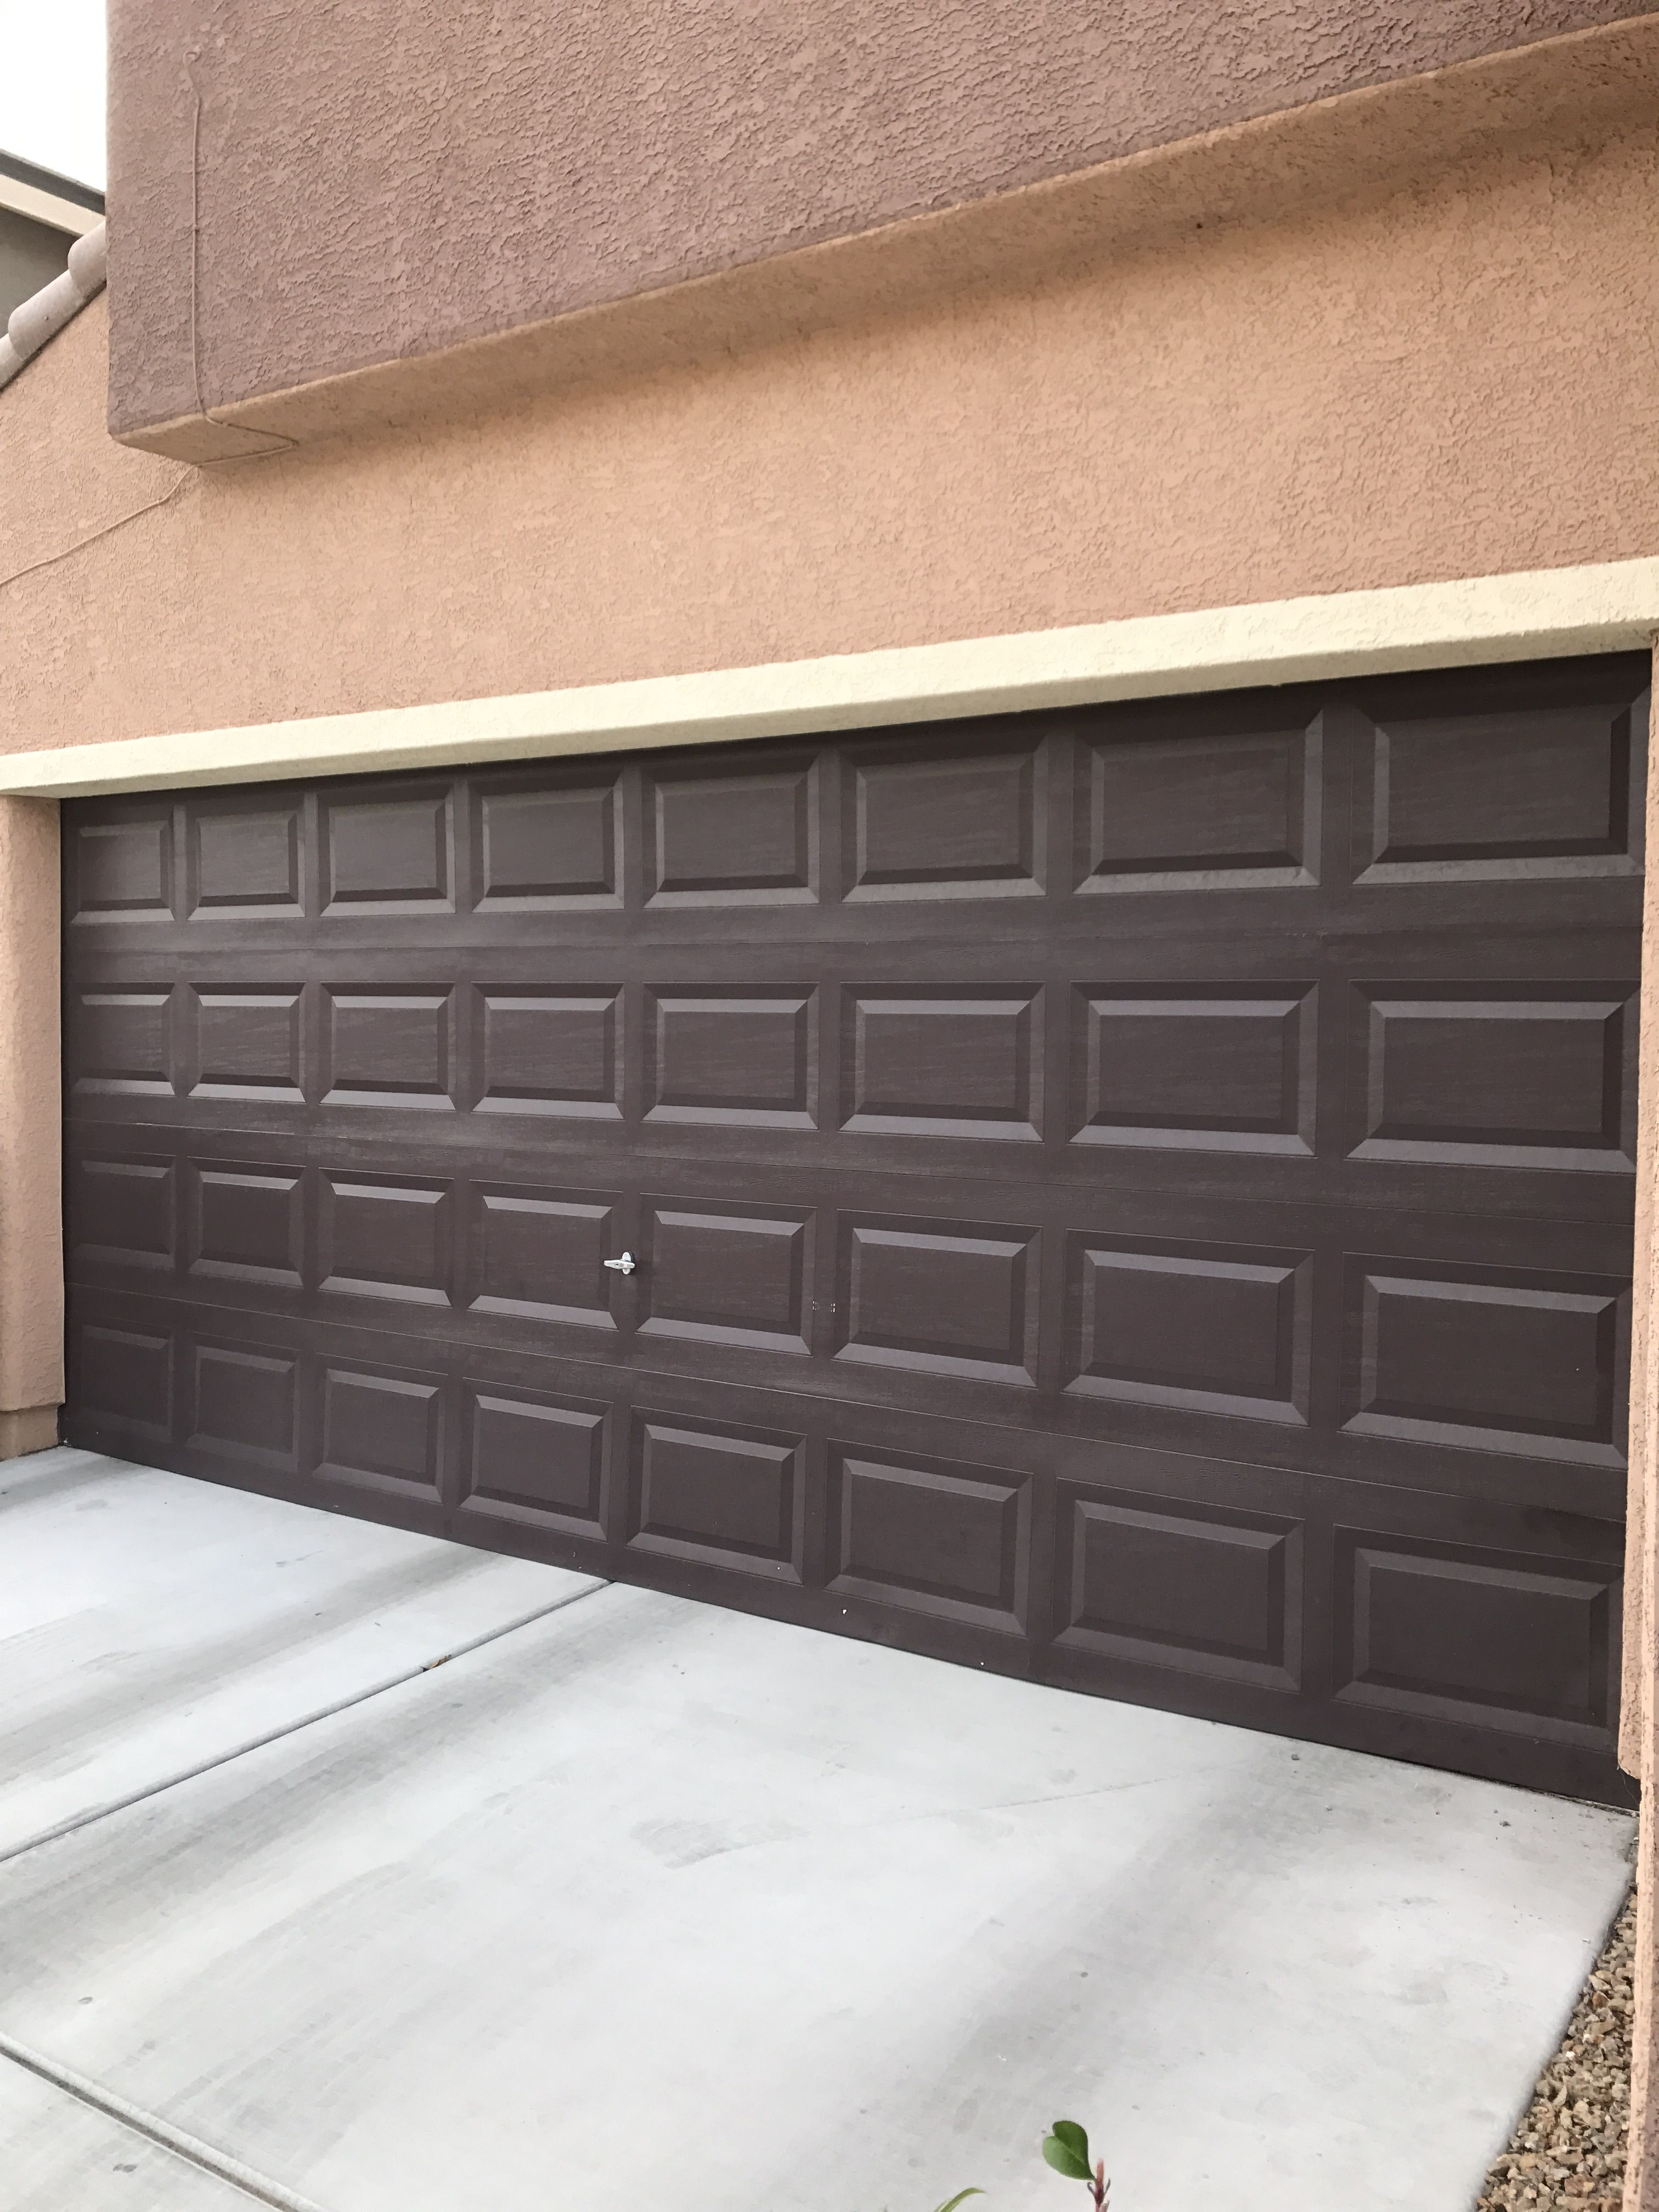 How Do You Figure Out Which Firm Provides The Best Garage Door